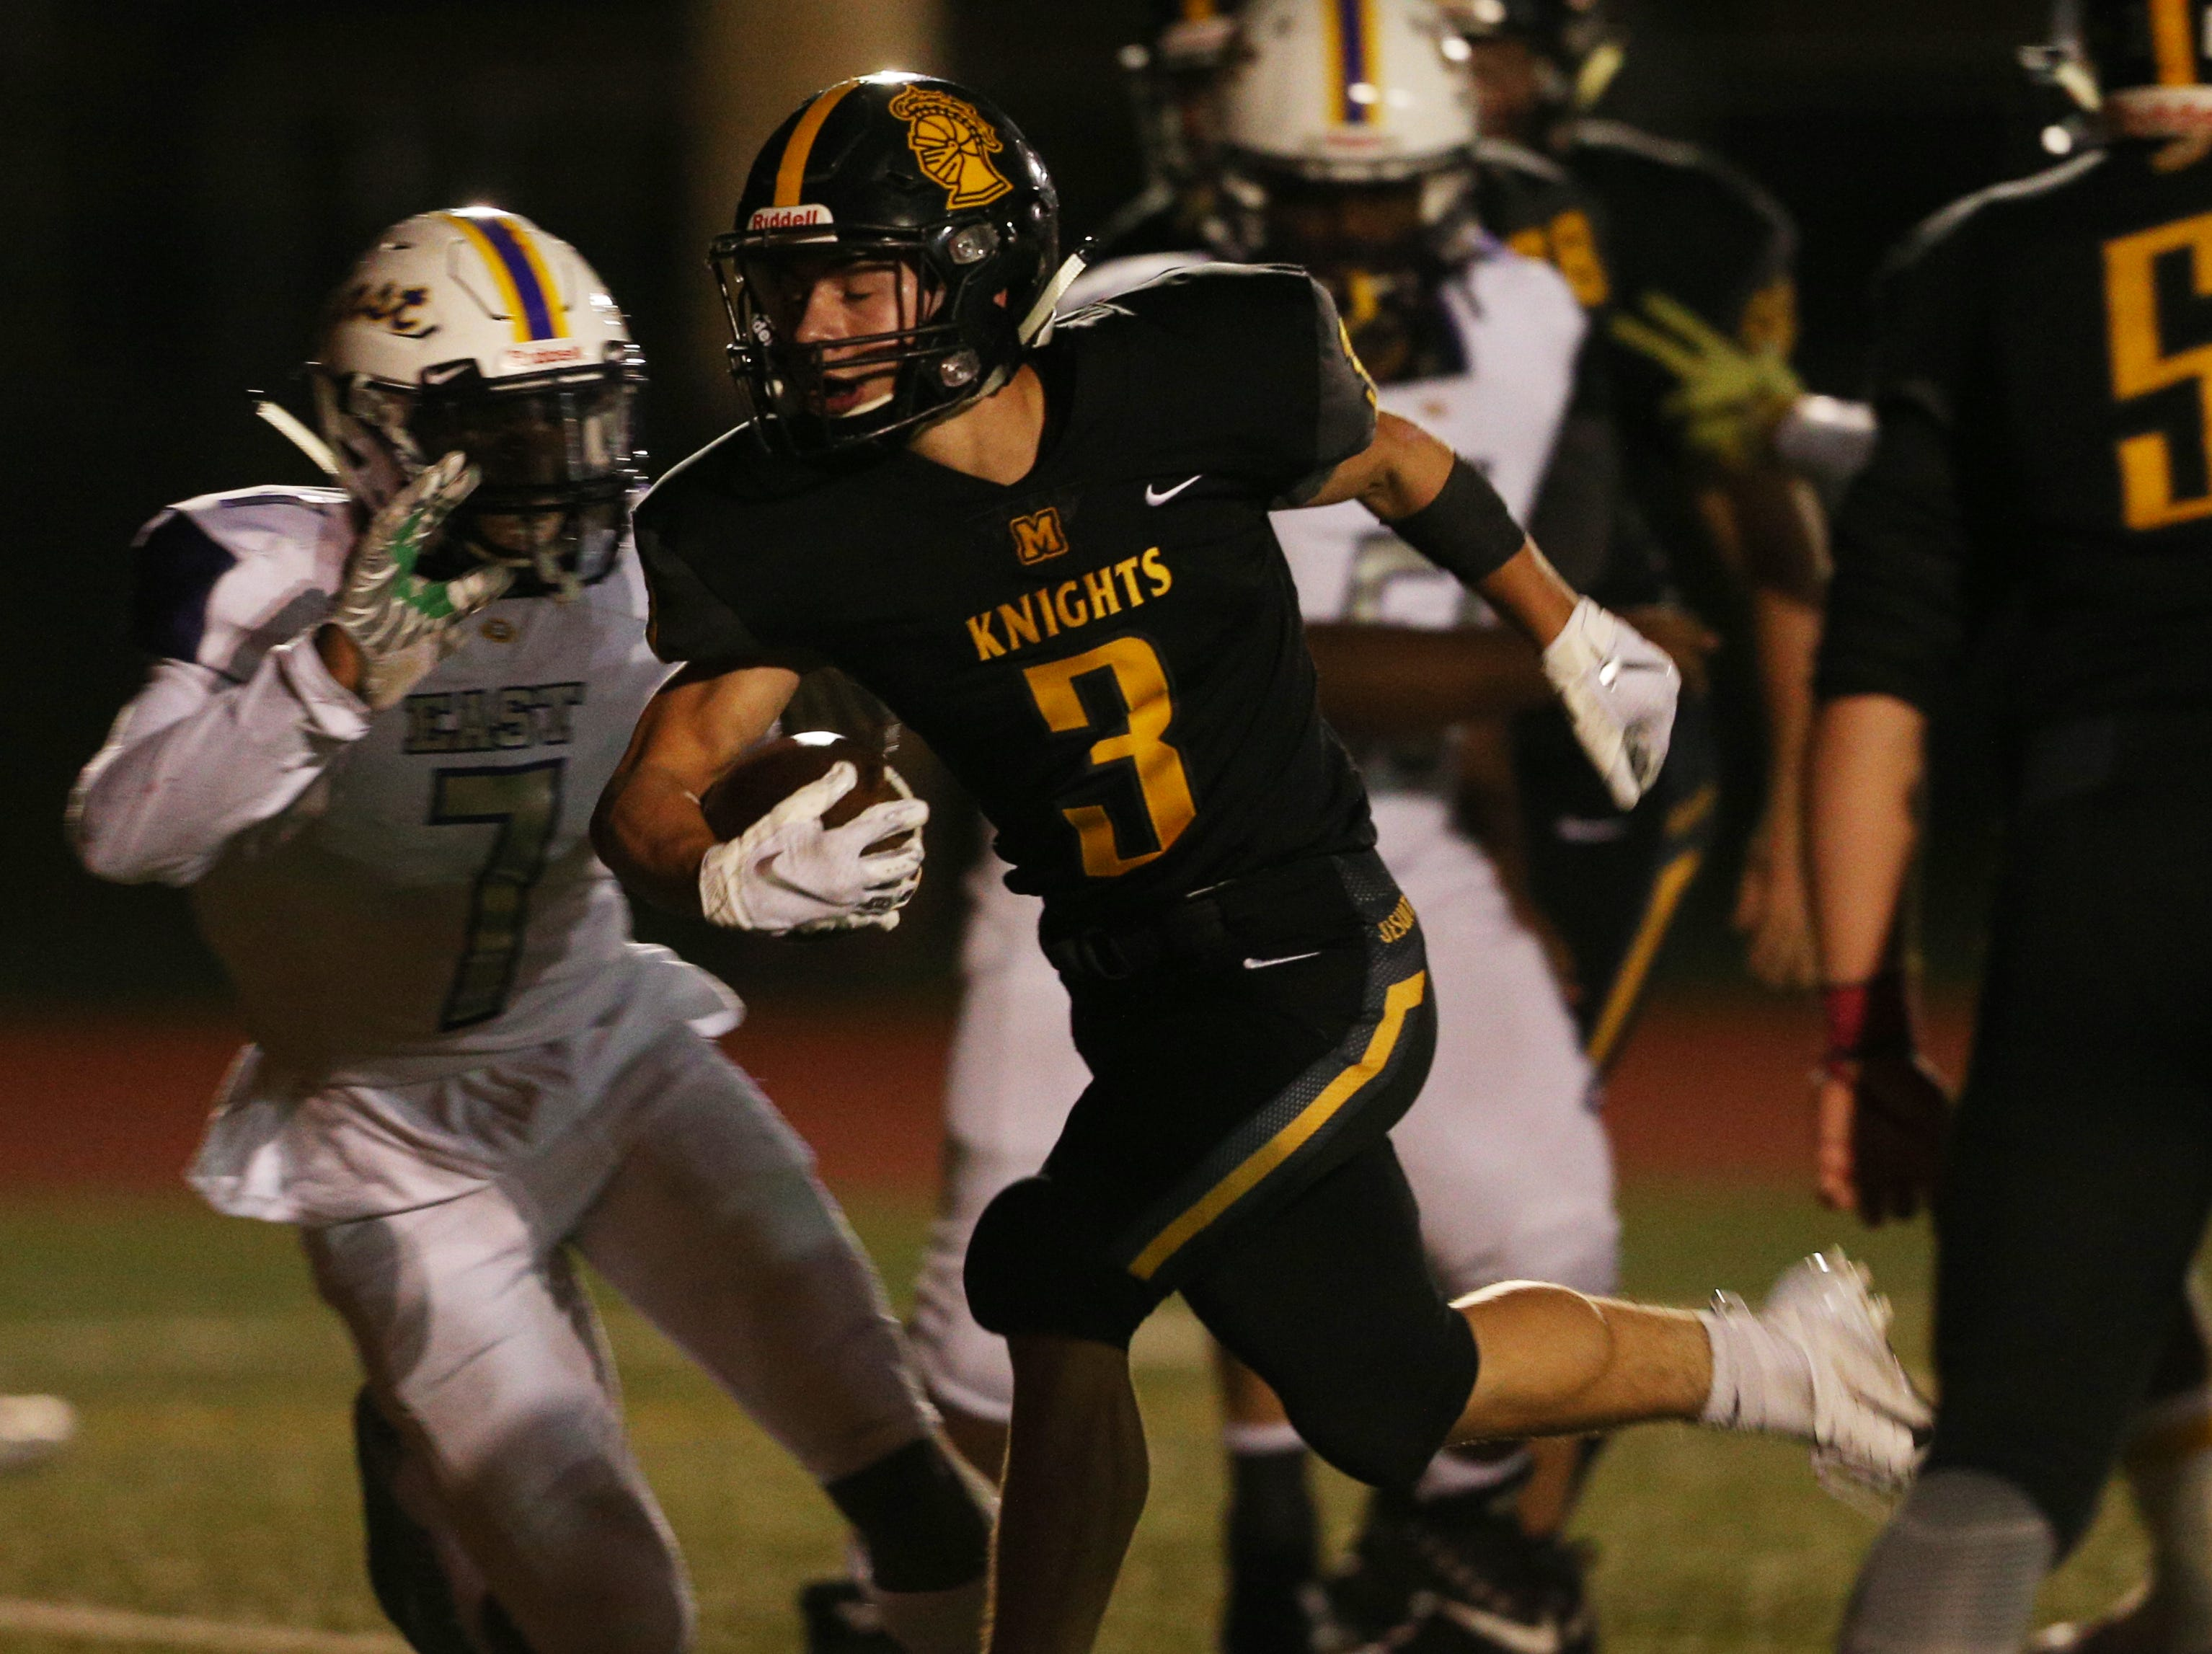 McQuaid's Andrew Passero runs in for a touchdown against East.